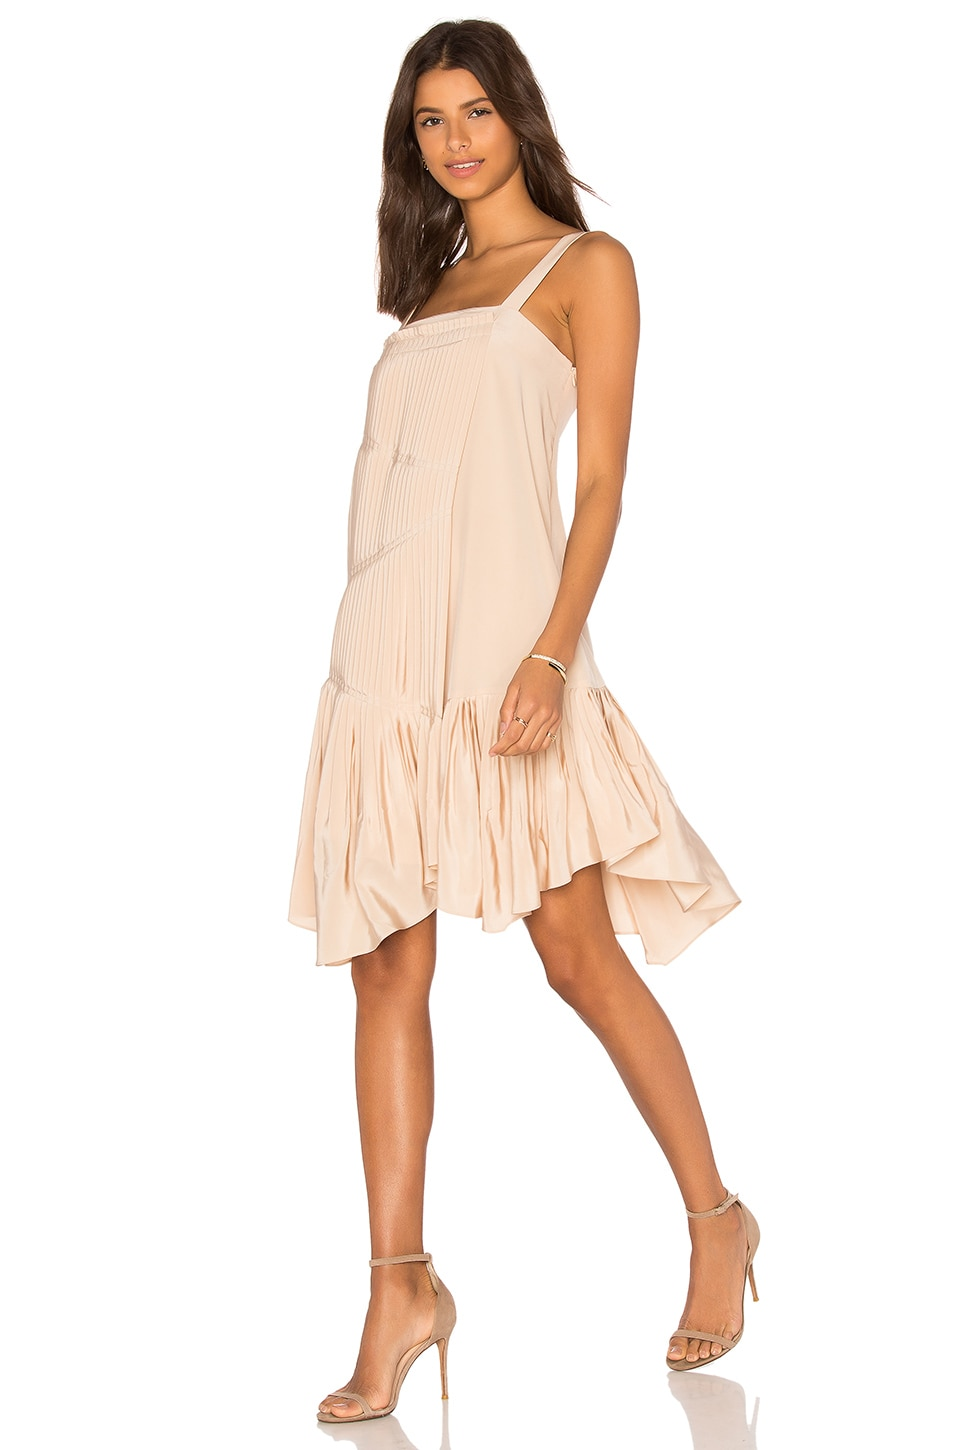 Tibi Pleated Strappy Dress in Morro Sand